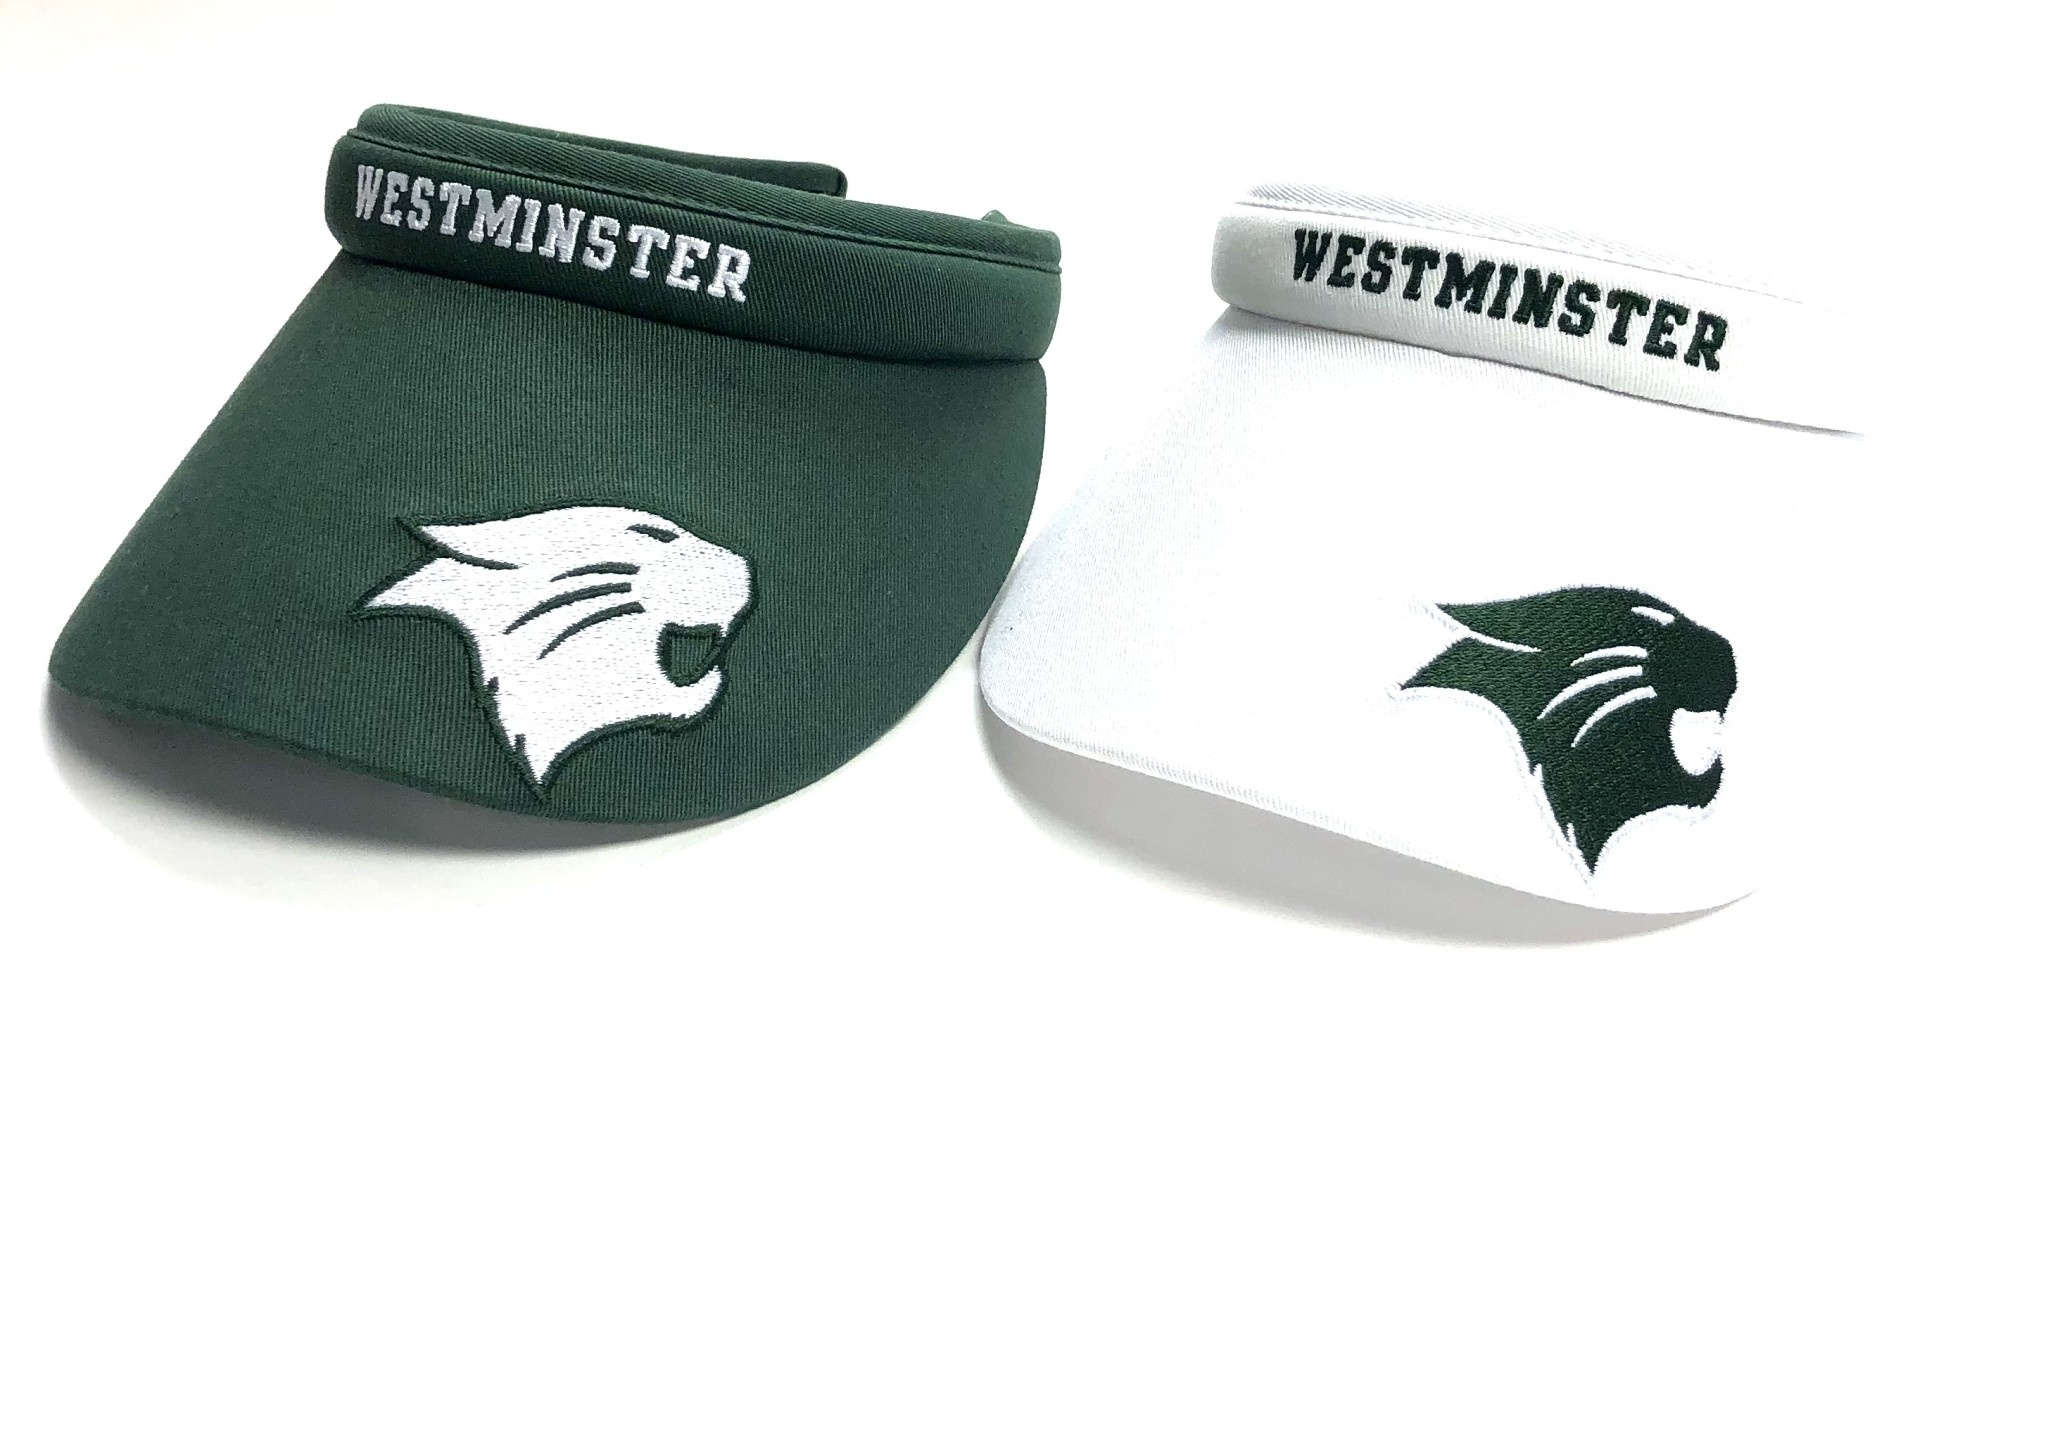 Champion Visor: Clip with White Westminster and Logo on Bill